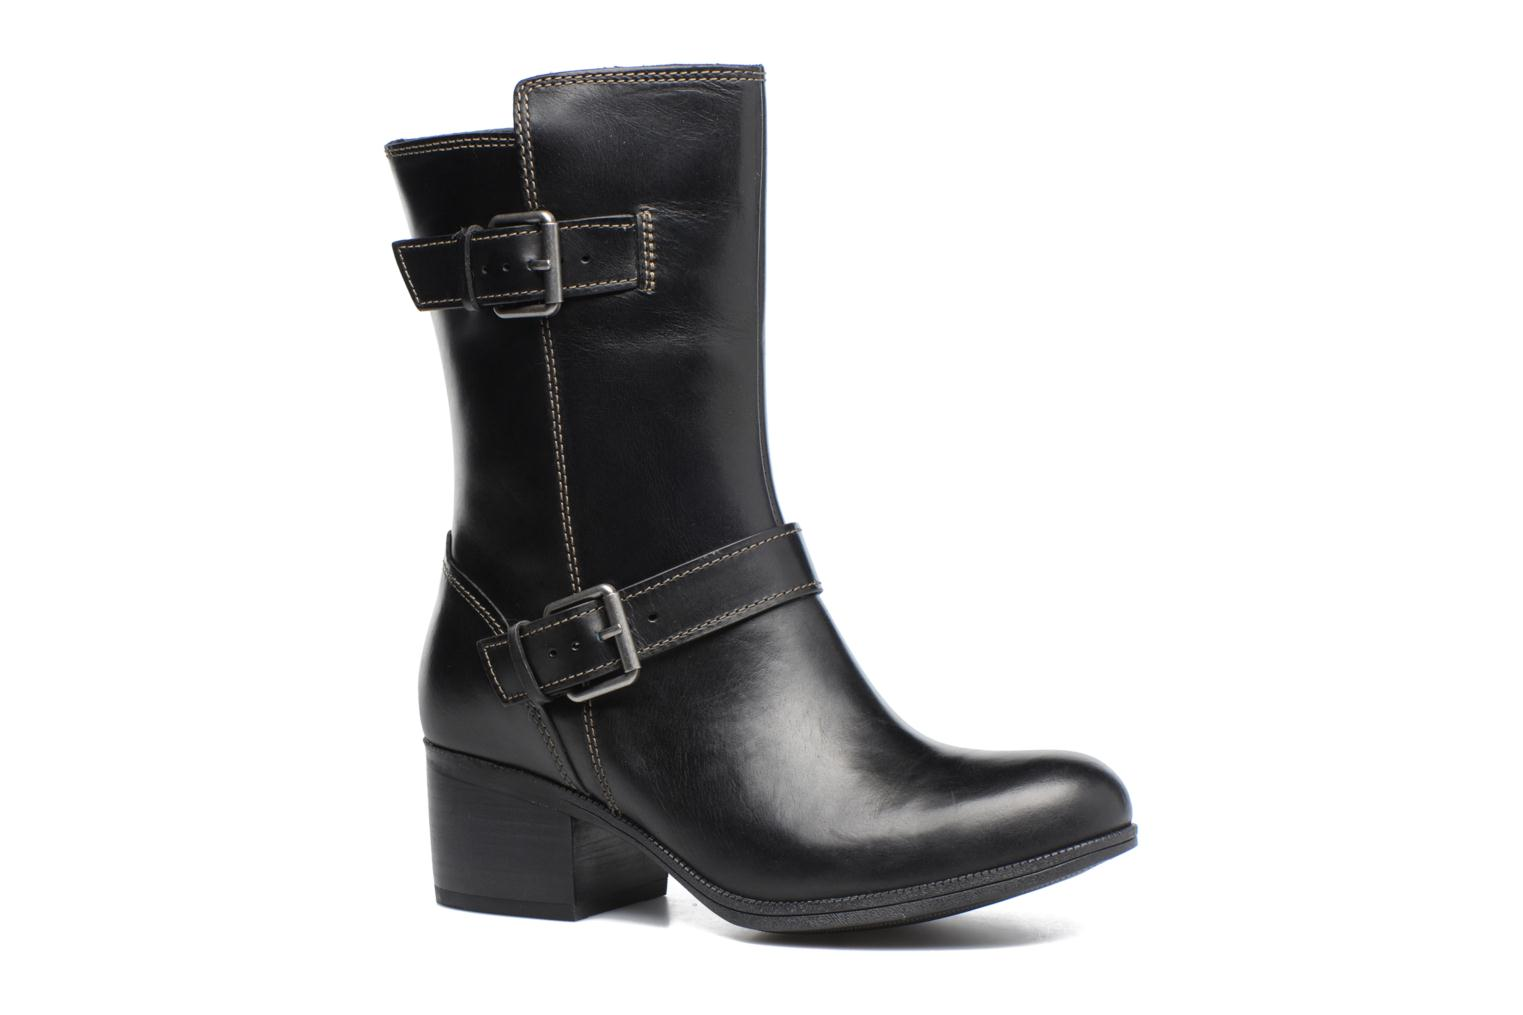 Marques Chaussure femme Clarks femme Maypearl Oasis Black